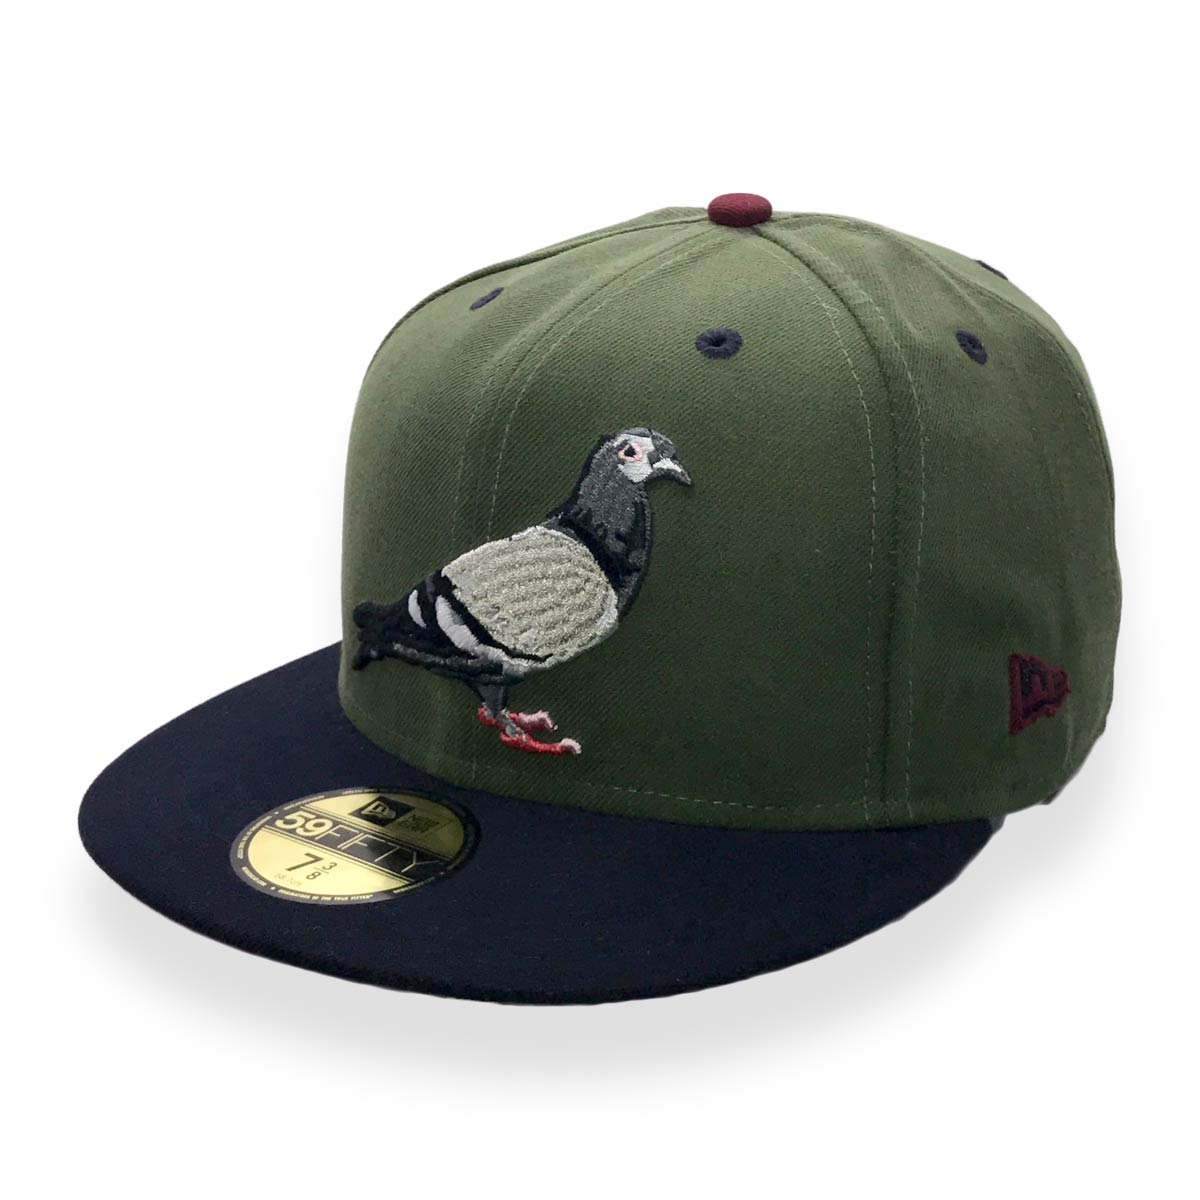 STAPLE X NEW ERA PIGEON 59FIFTY OLIVE MENS FITTED CAP - MyCraze 09c90bd33f2